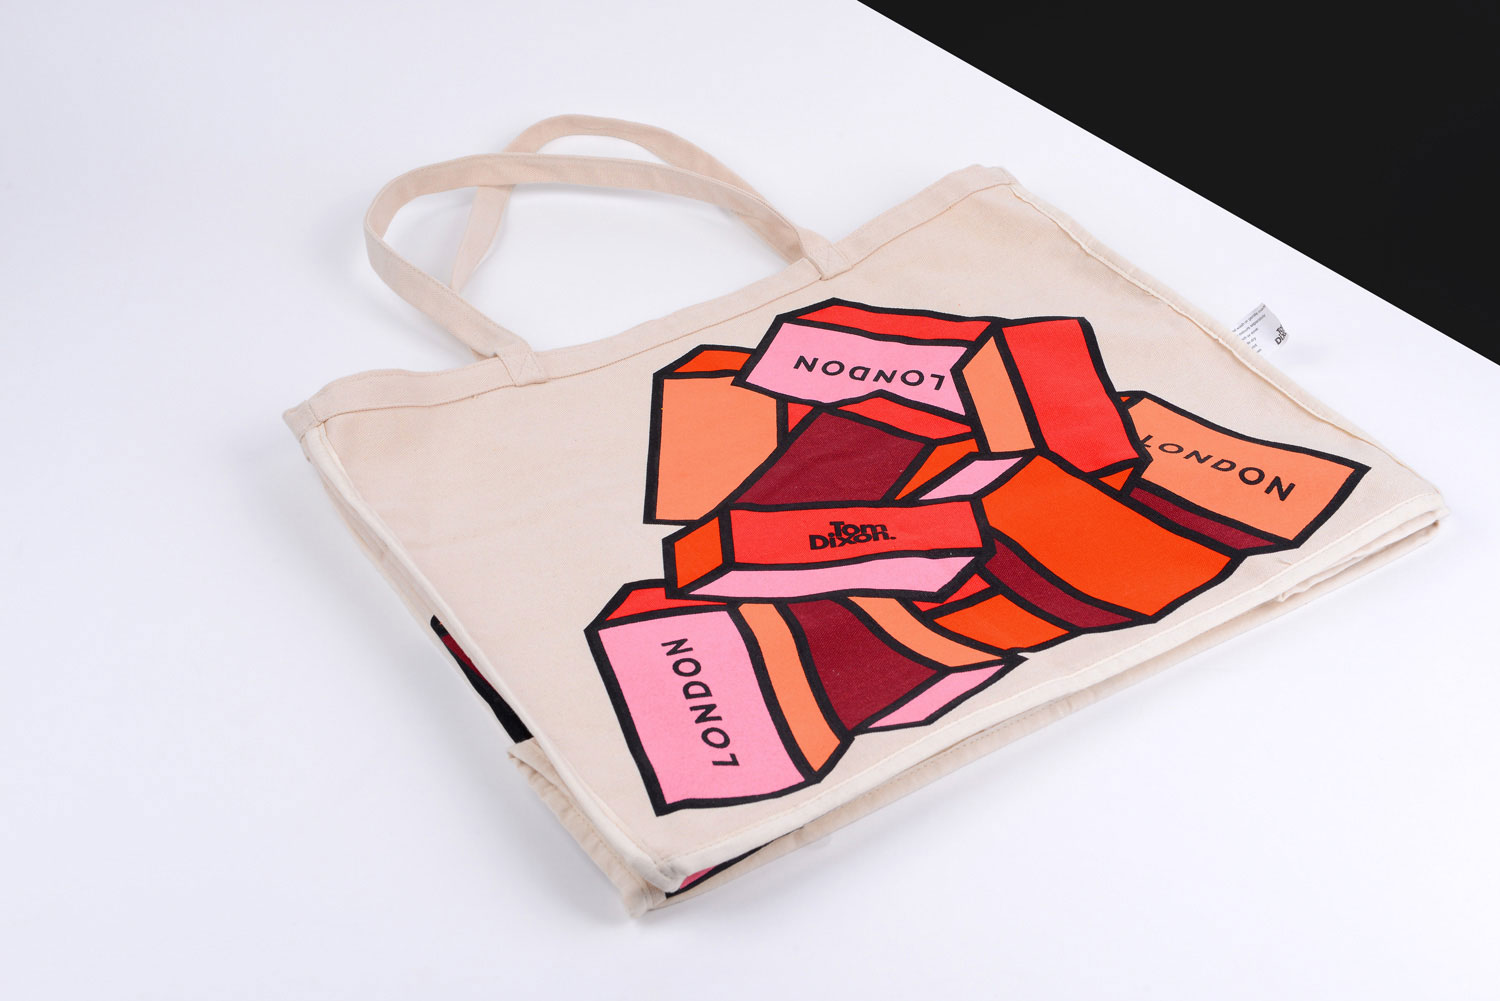 Progress Packaging Tom Dixon Environmentally Friendly Luxury Bespoke Retail 16oz Natural Canvas Tote Bag Screen Printed